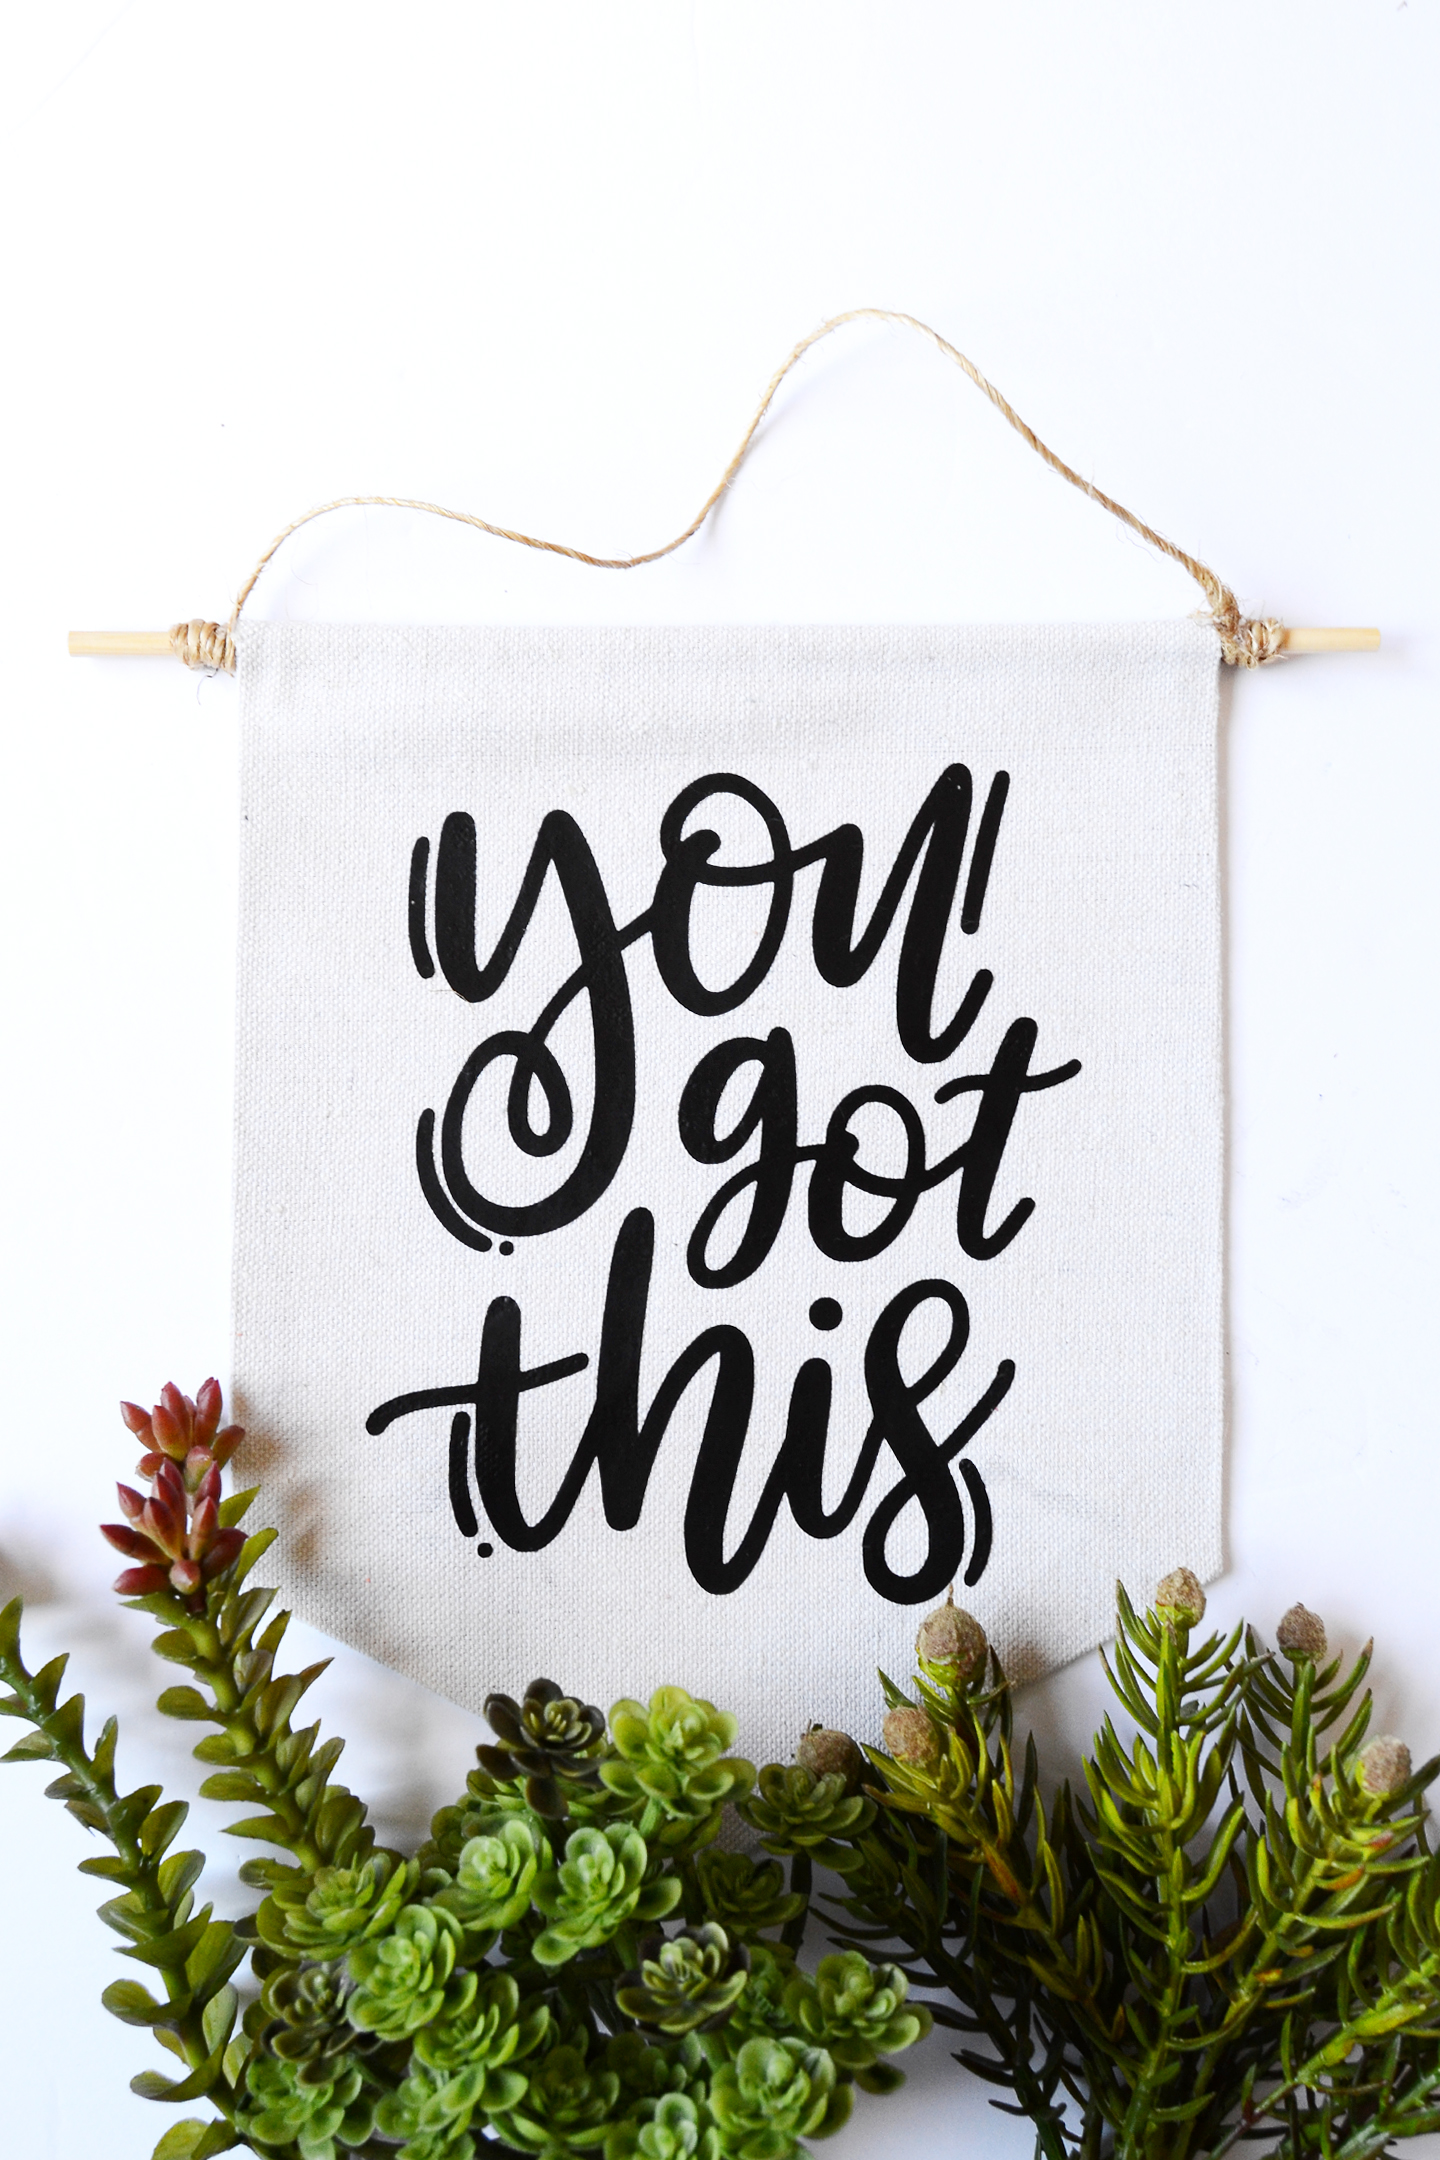 "You can do it! This mini wall hanging is a cute no sew project - a ""You Got This"" message reminds you to keep going even when times are tough."